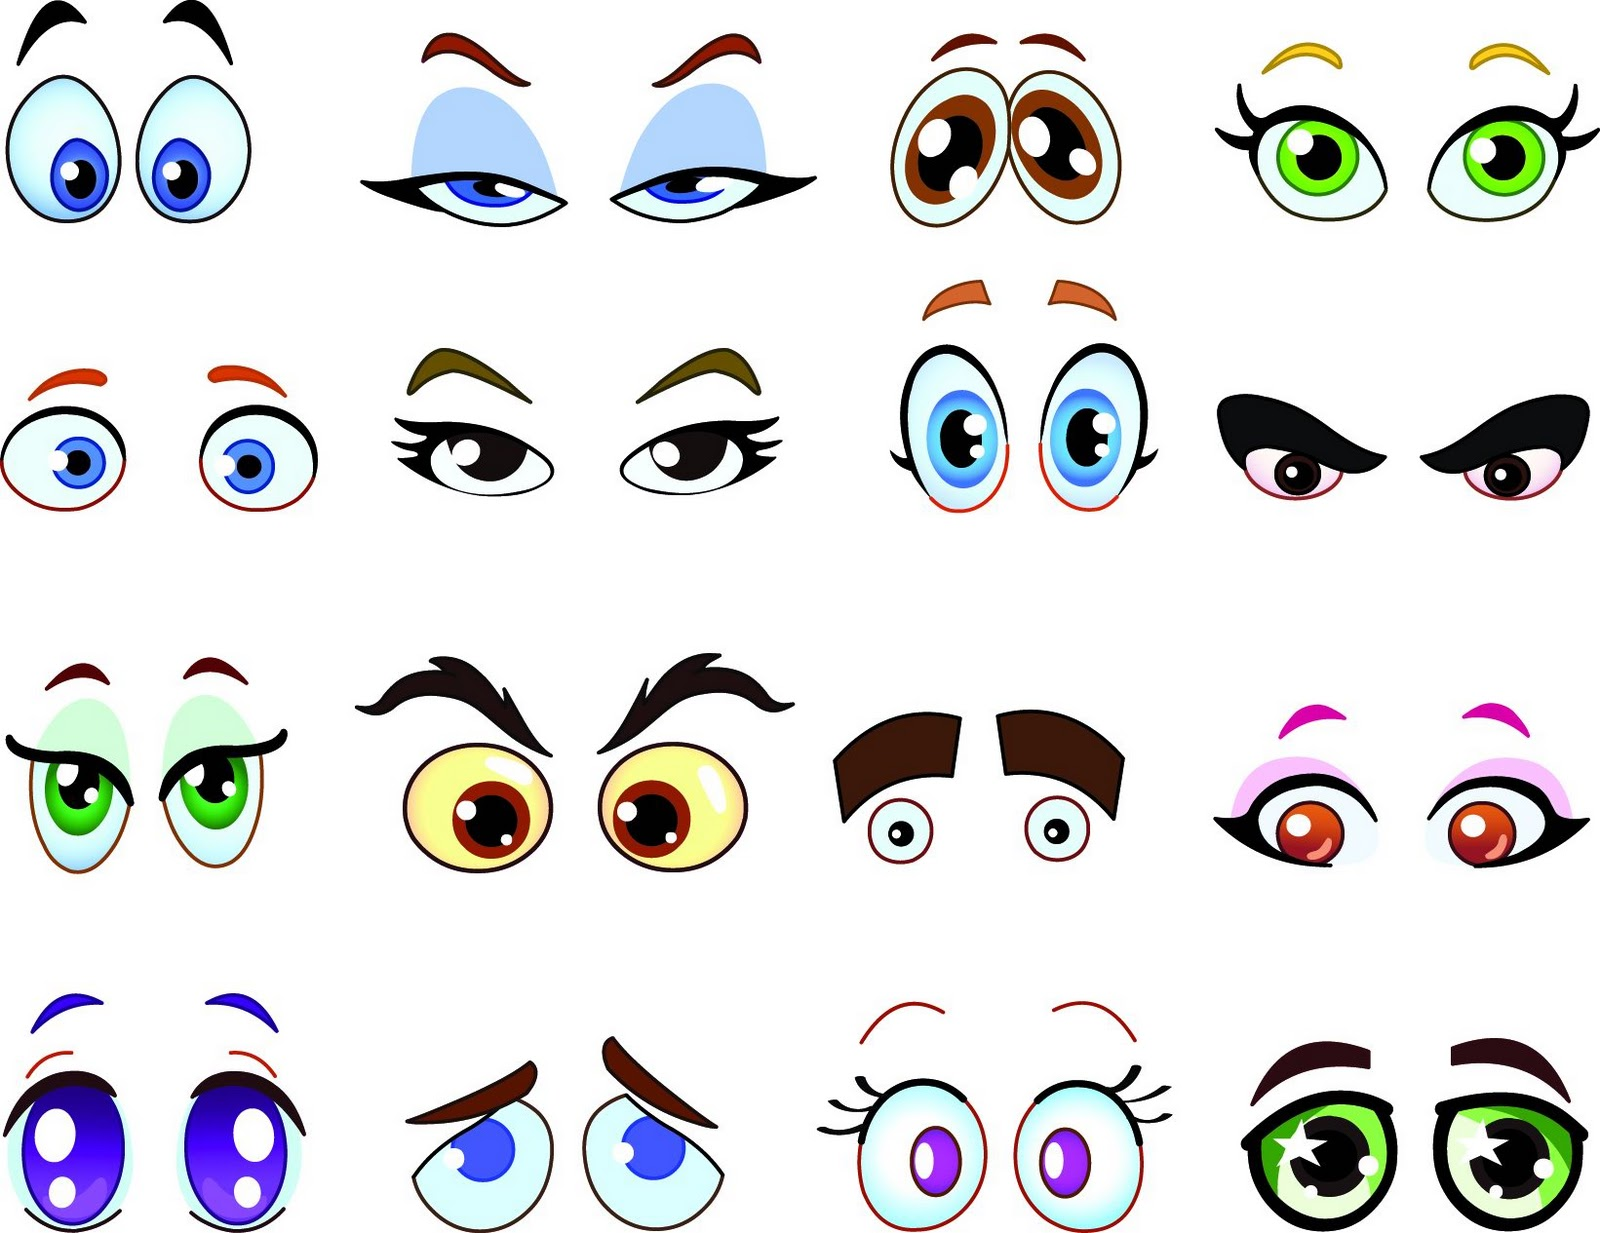 Shopkins eyes clipart jpg freeuse library Cute shopkins with eyes clipart - ClipartFest jpg freeuse library